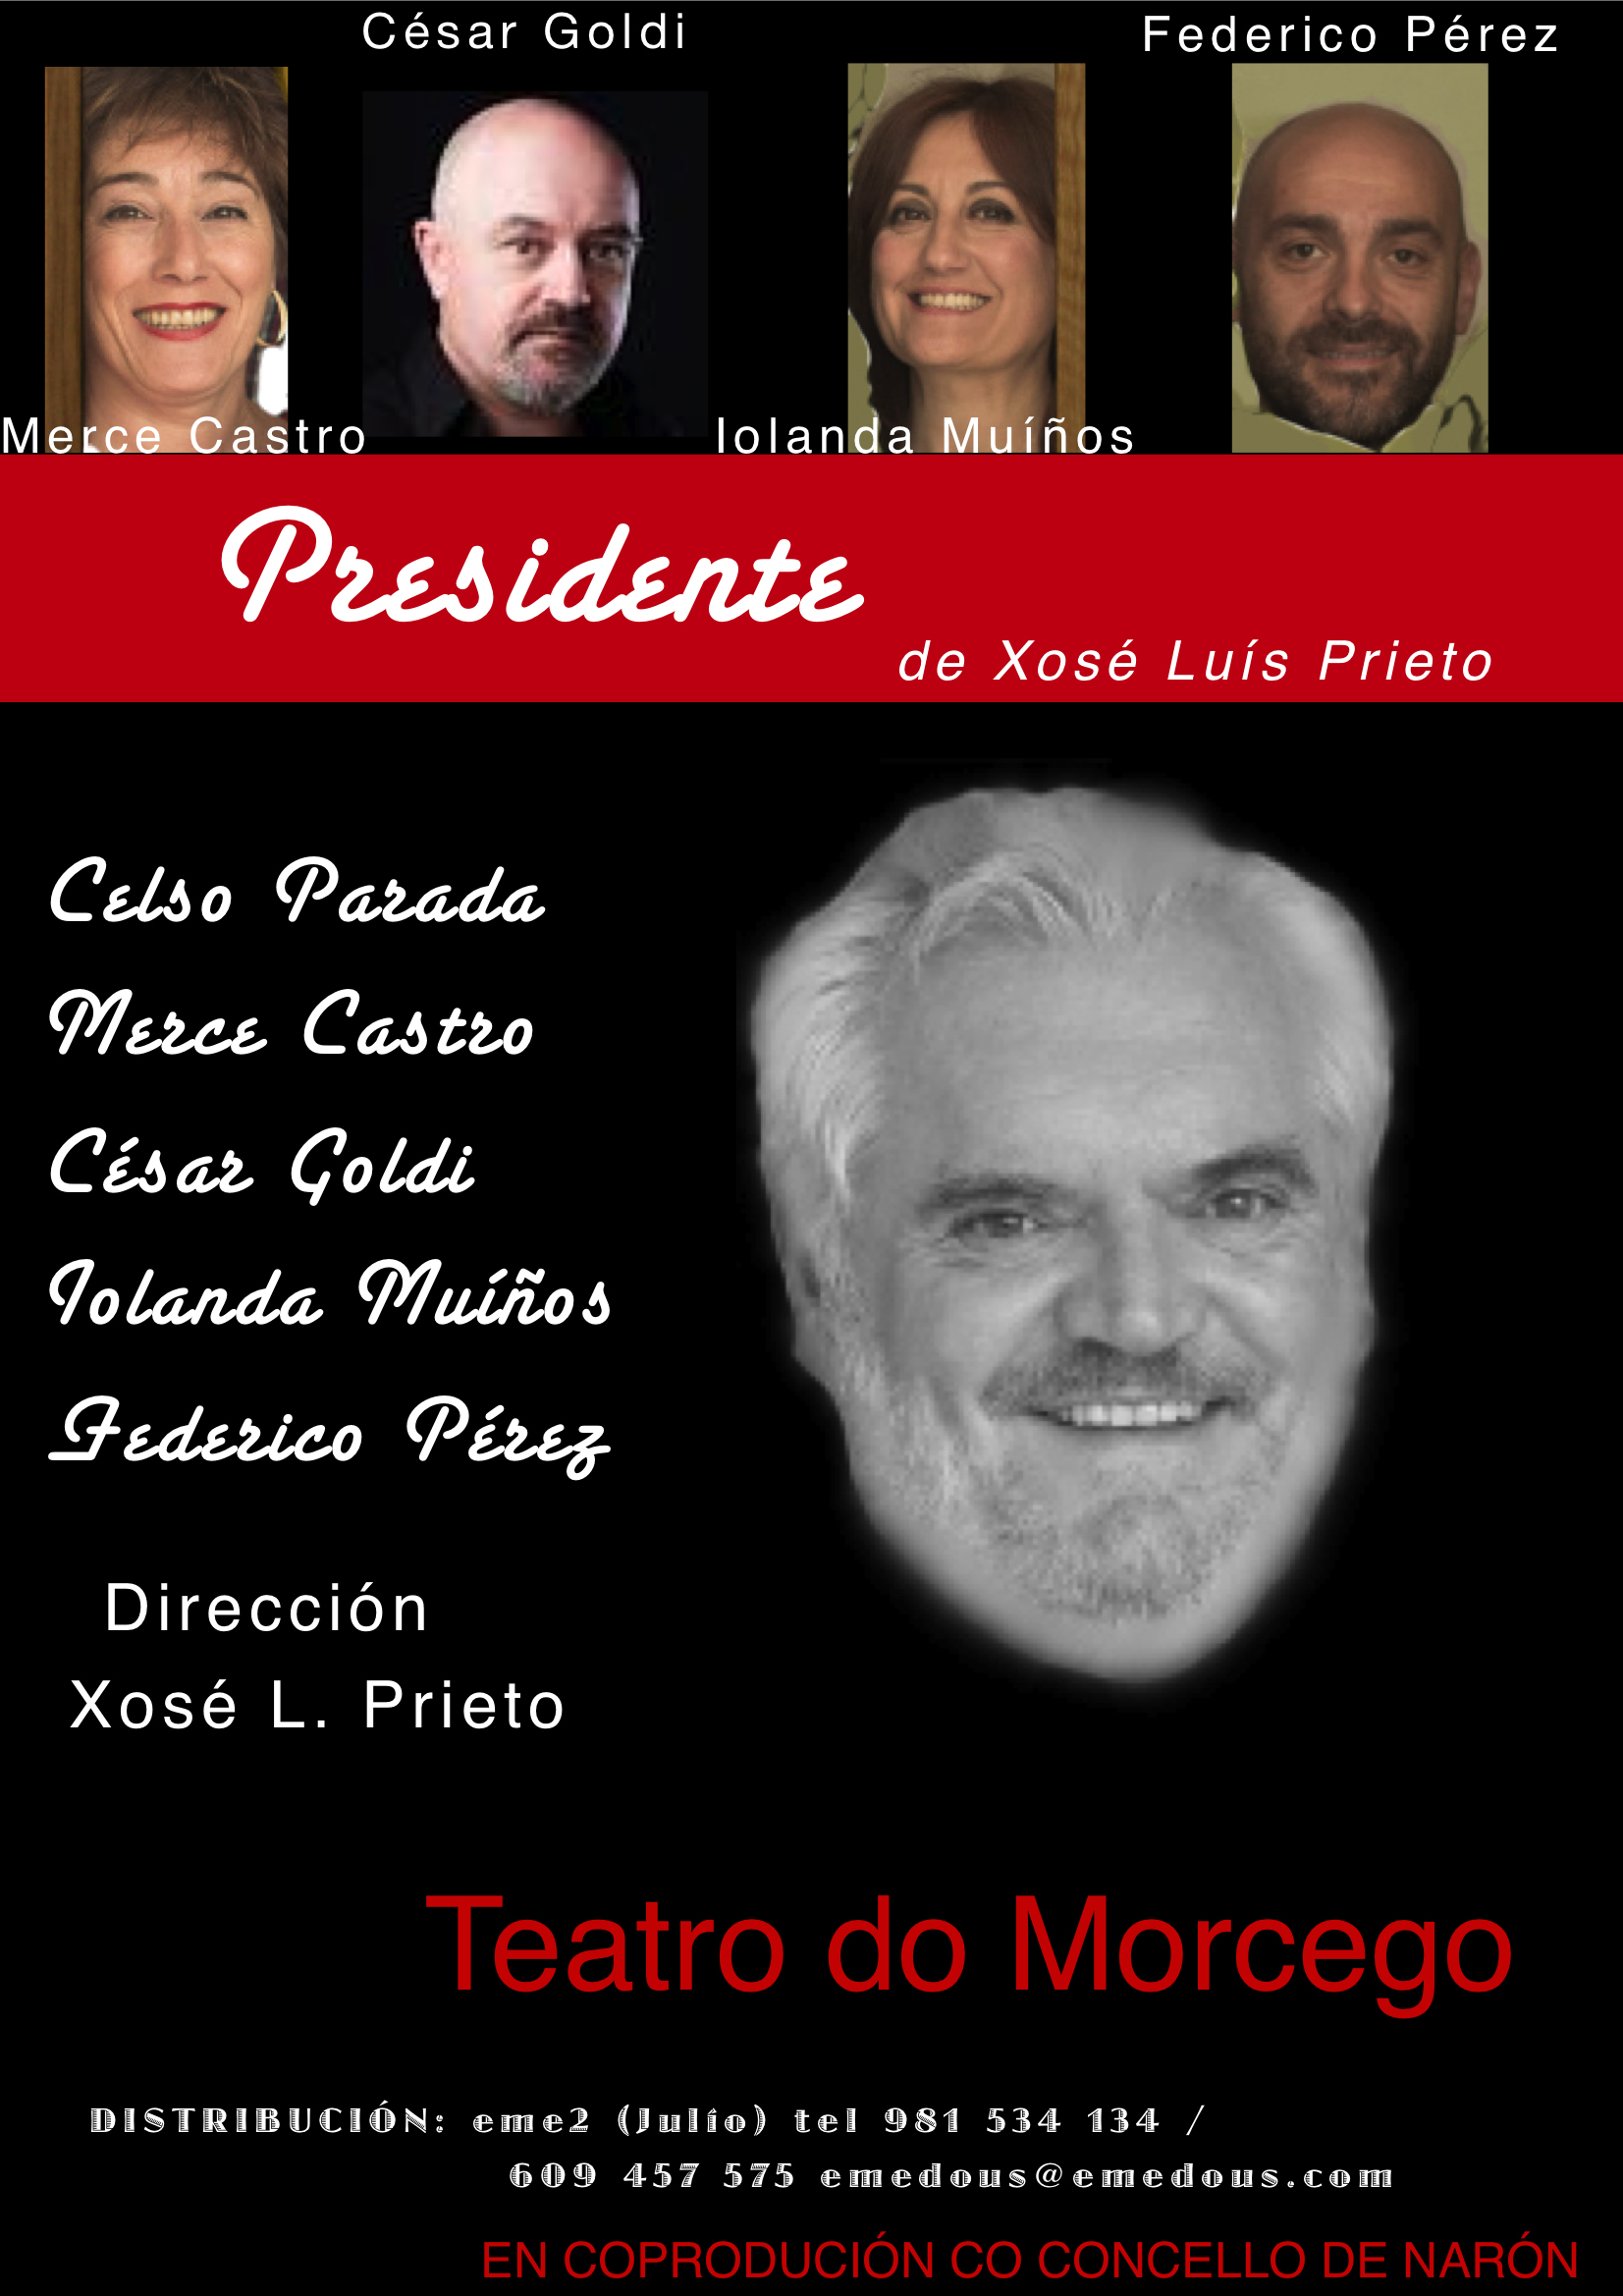 Teatro do Morcego - Presidente